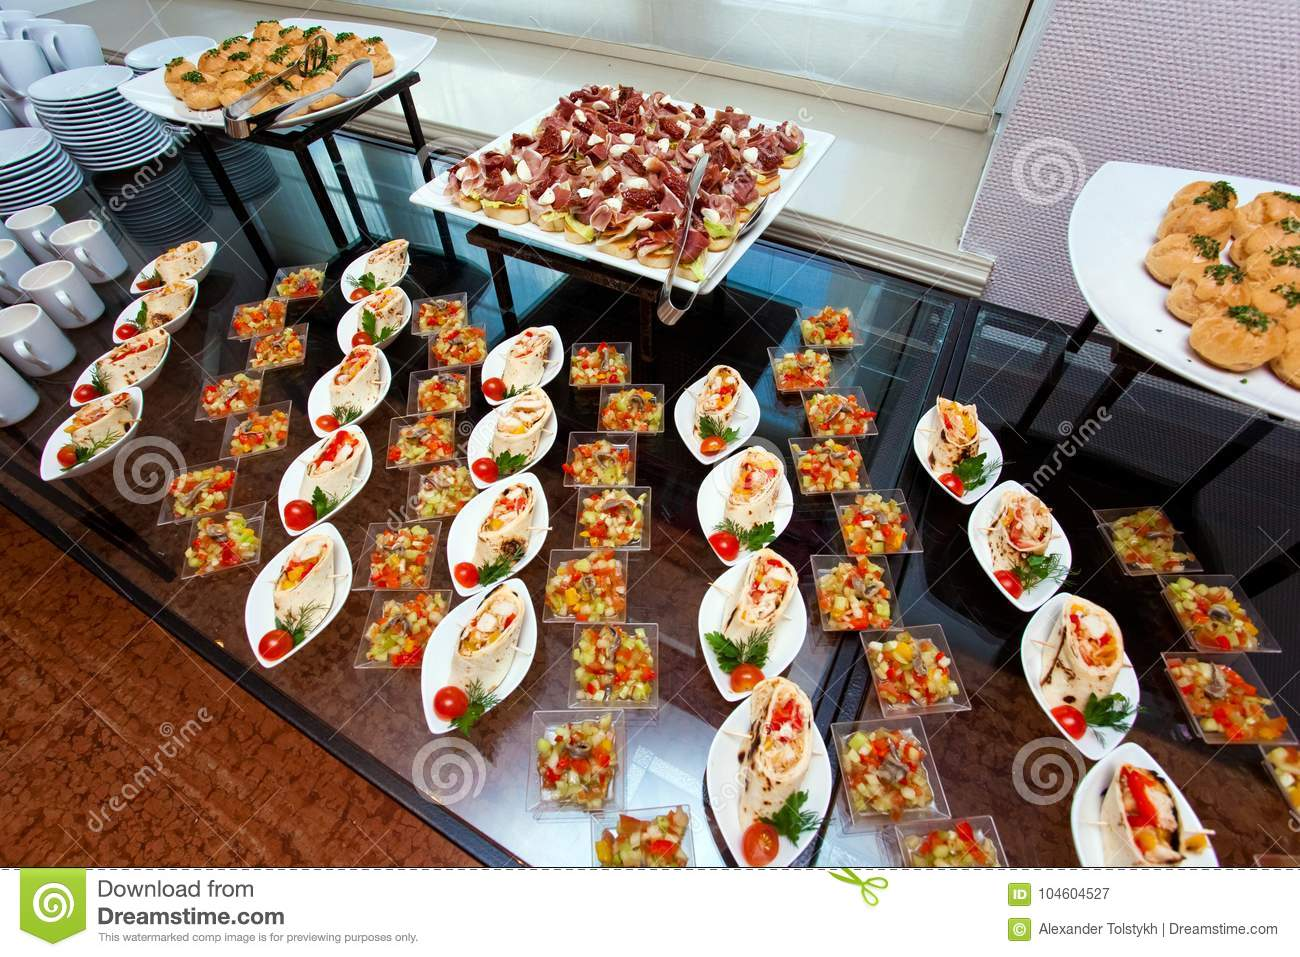 https www dreamstime com snacks sandwiches breakfast english hotel restaurant table snack bar close up view image104604527